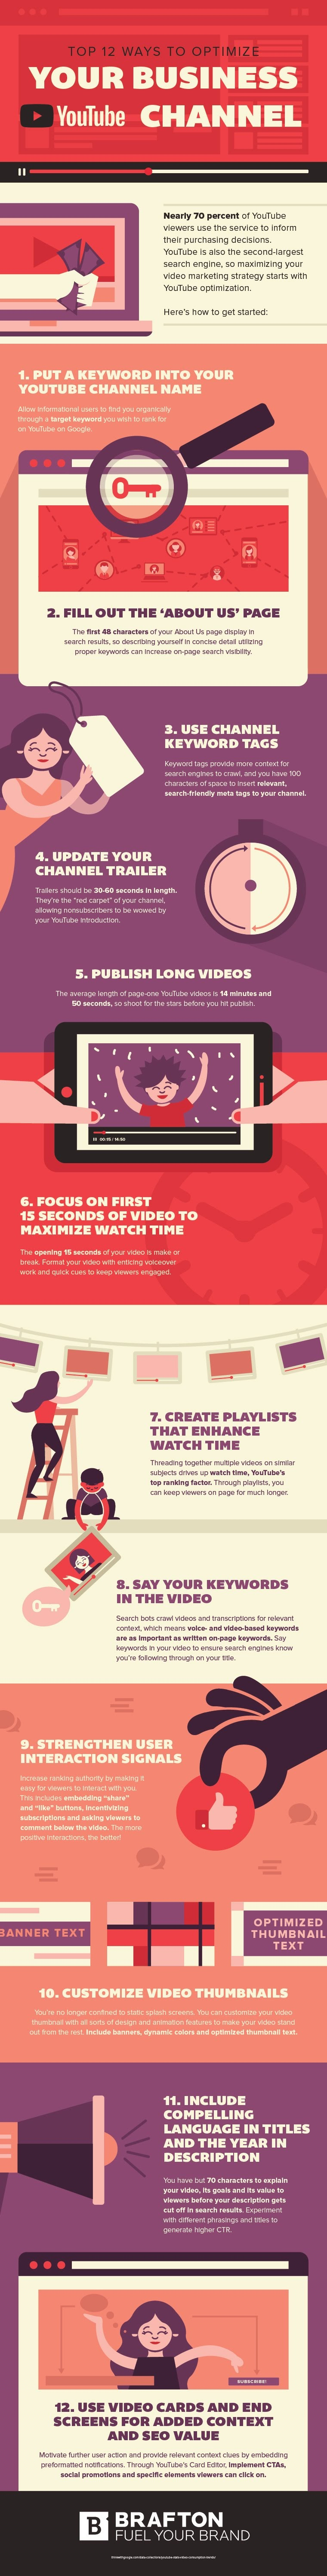 How to Optimize a YouTube Channel and Videos for Better Visibility - #infographic